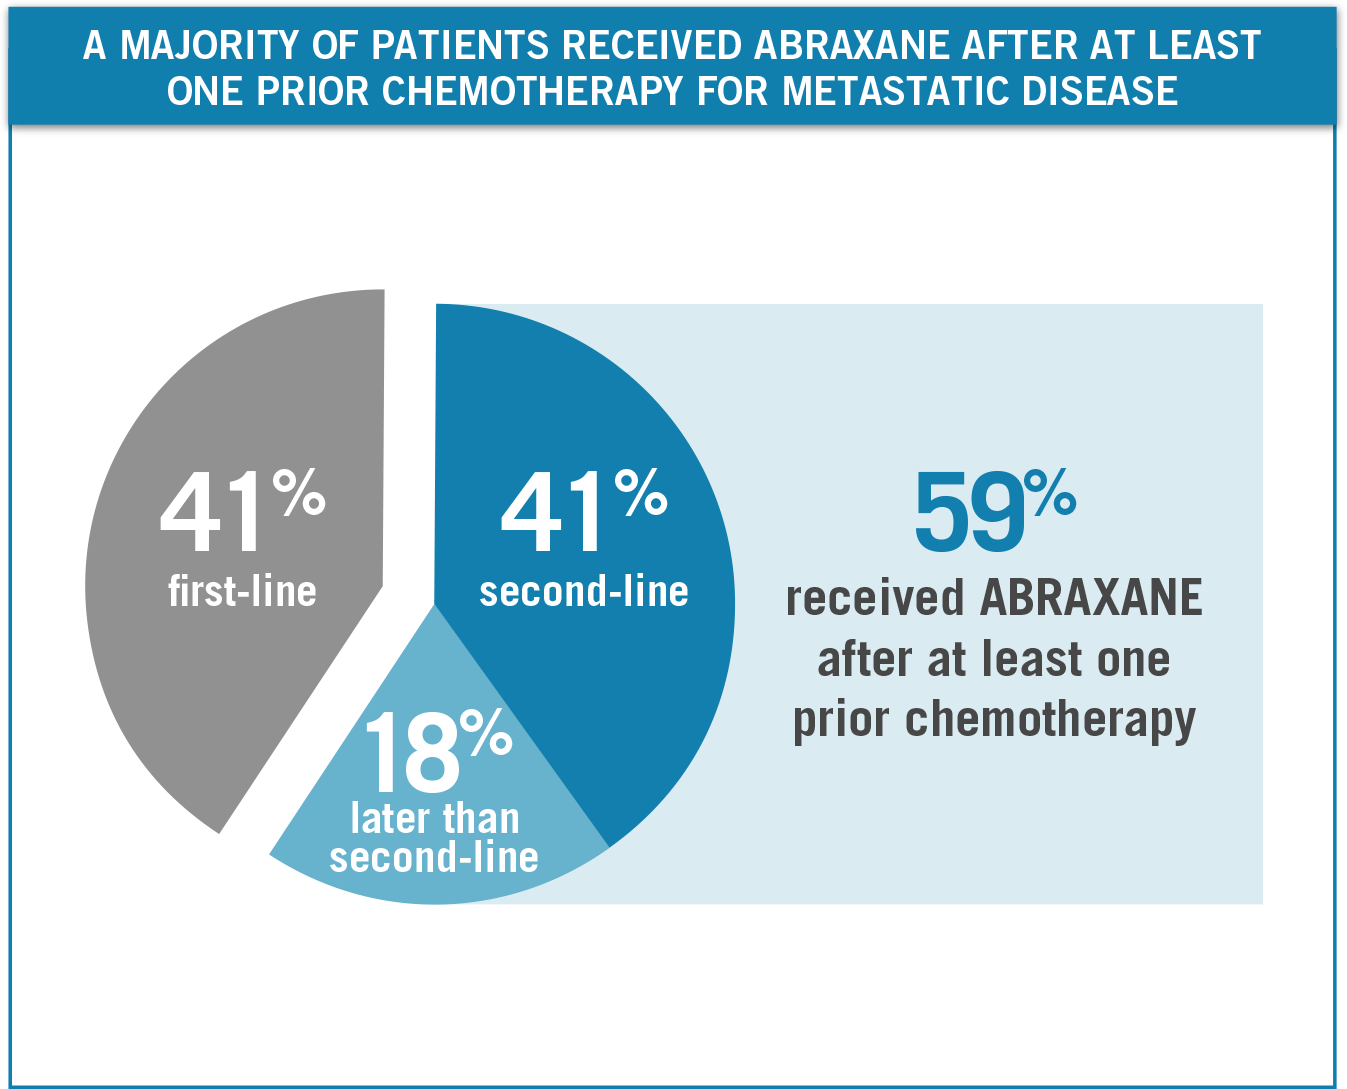 59% of MBC patients received ABX after at least one prior chemotherapy